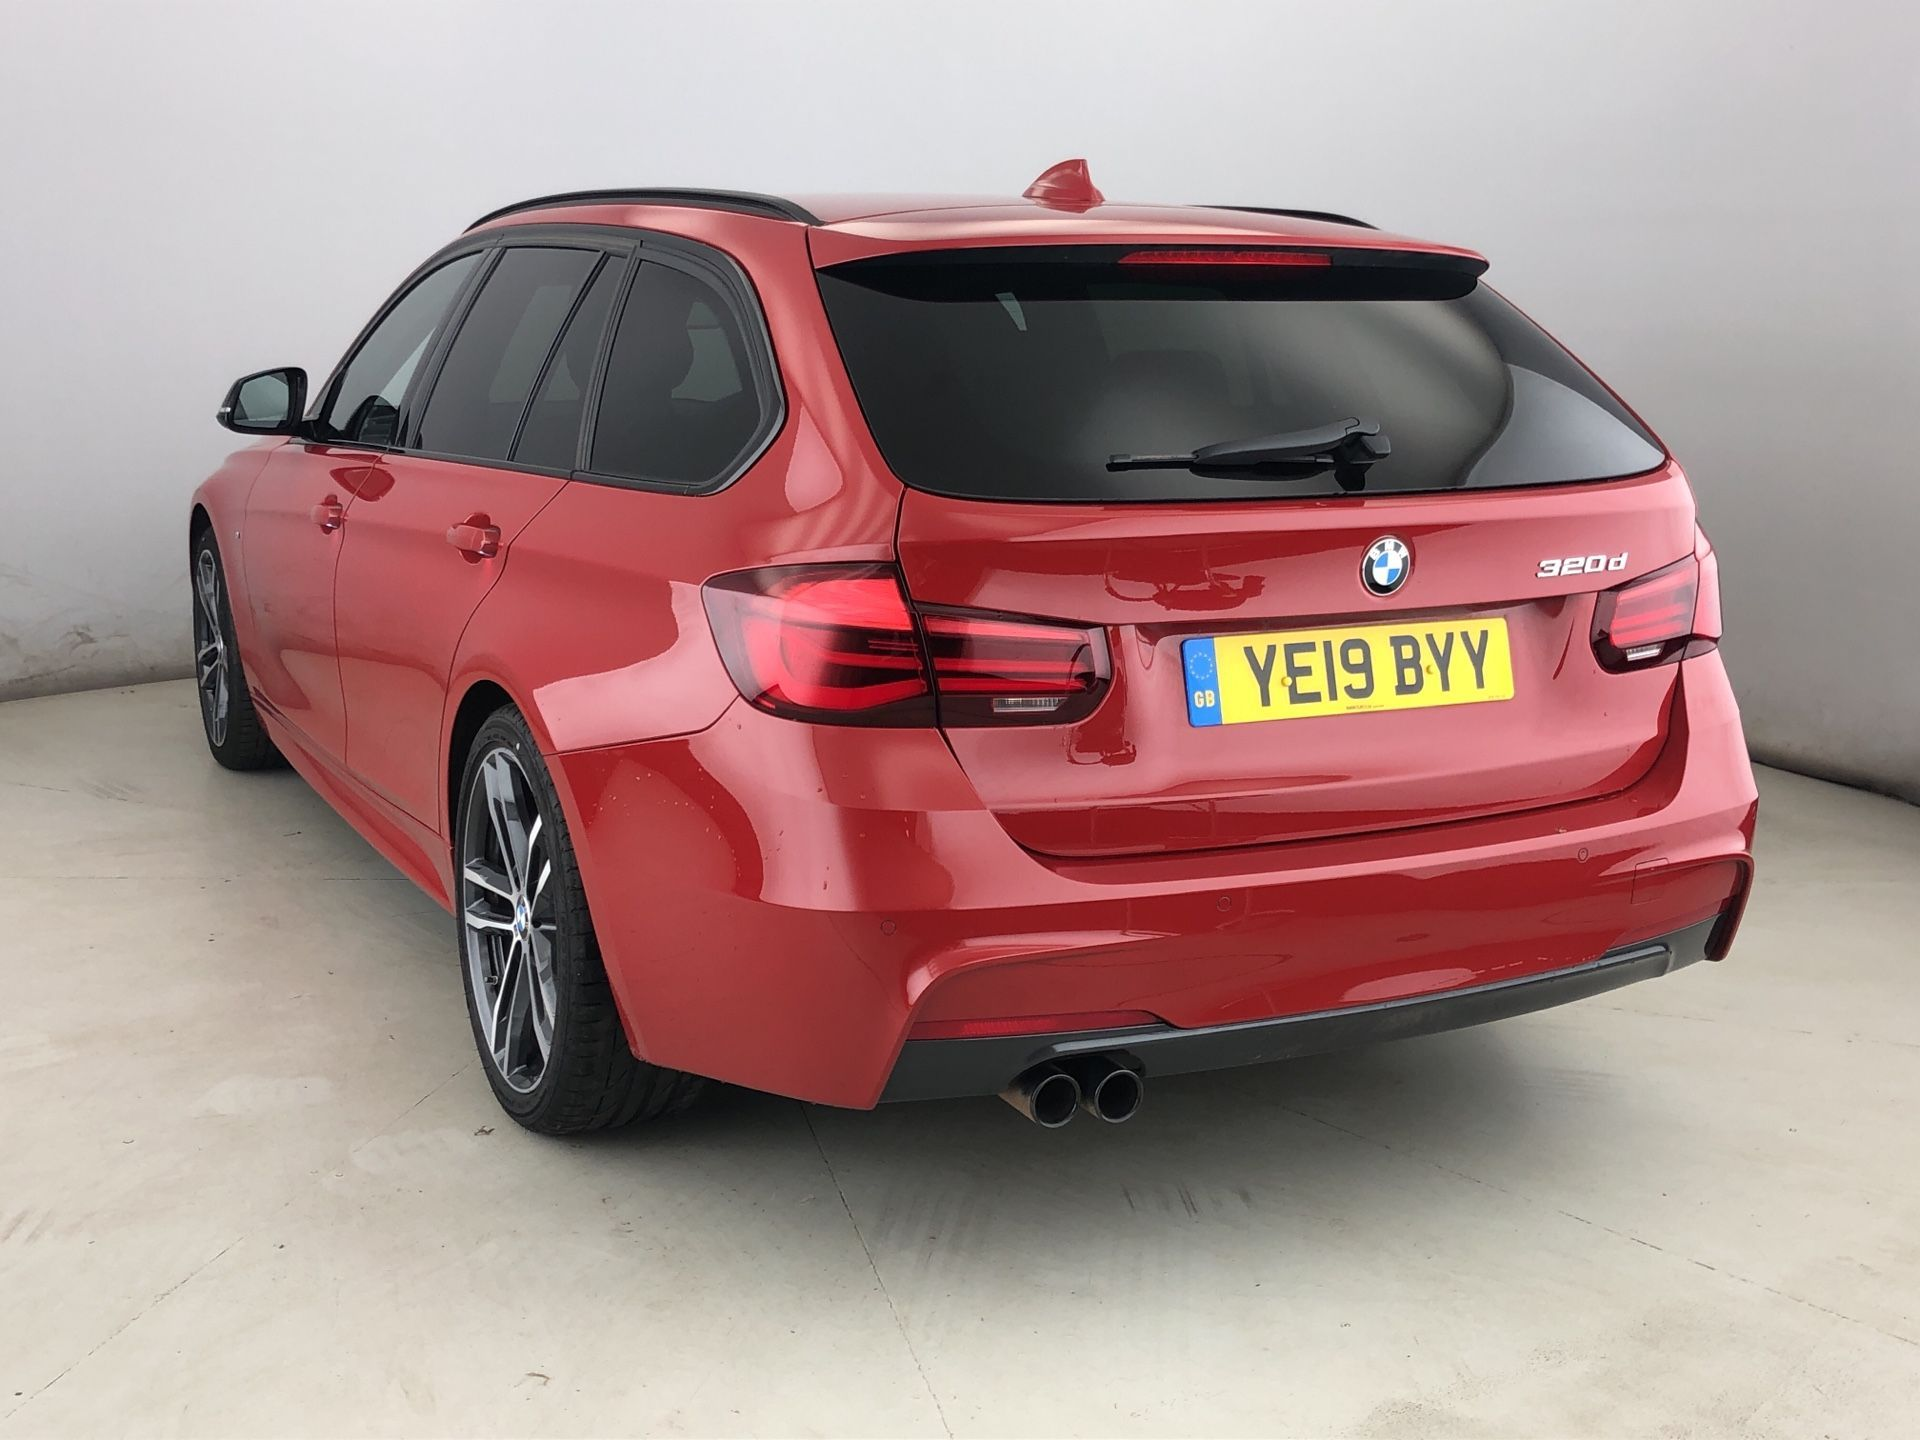 Image 2 - BMW 320d M Sport Shadow Edition Touring (YE19BYY)